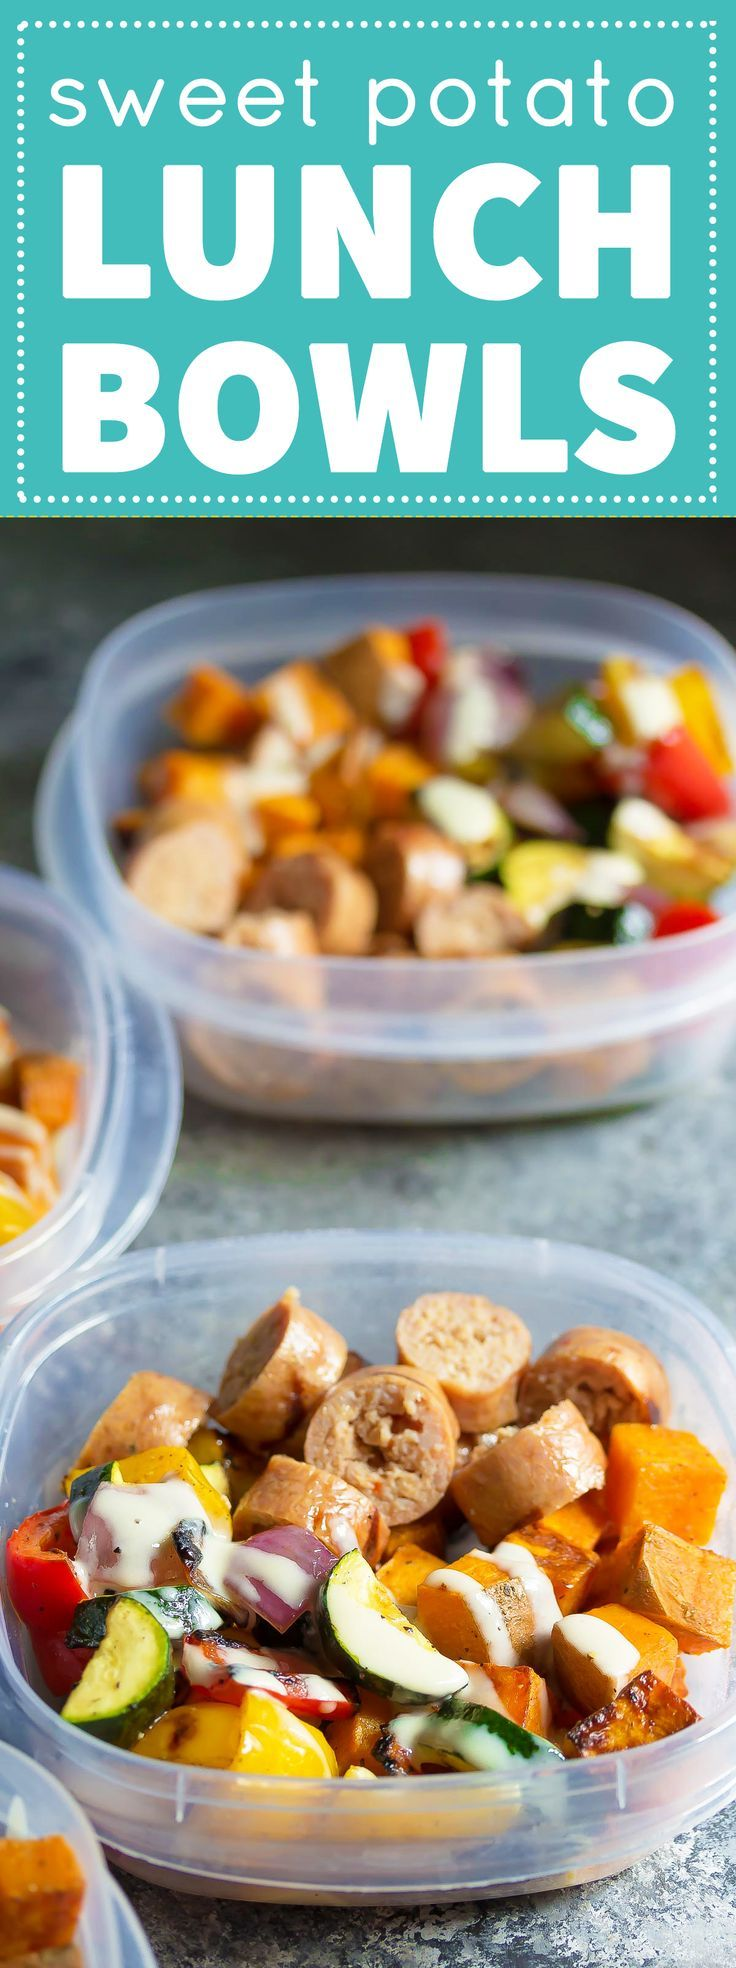 Make these Turkey Sausage & Sweet Potato Lunch Bowls on Sunday and have a whole week of work lunches ready! #mealprep